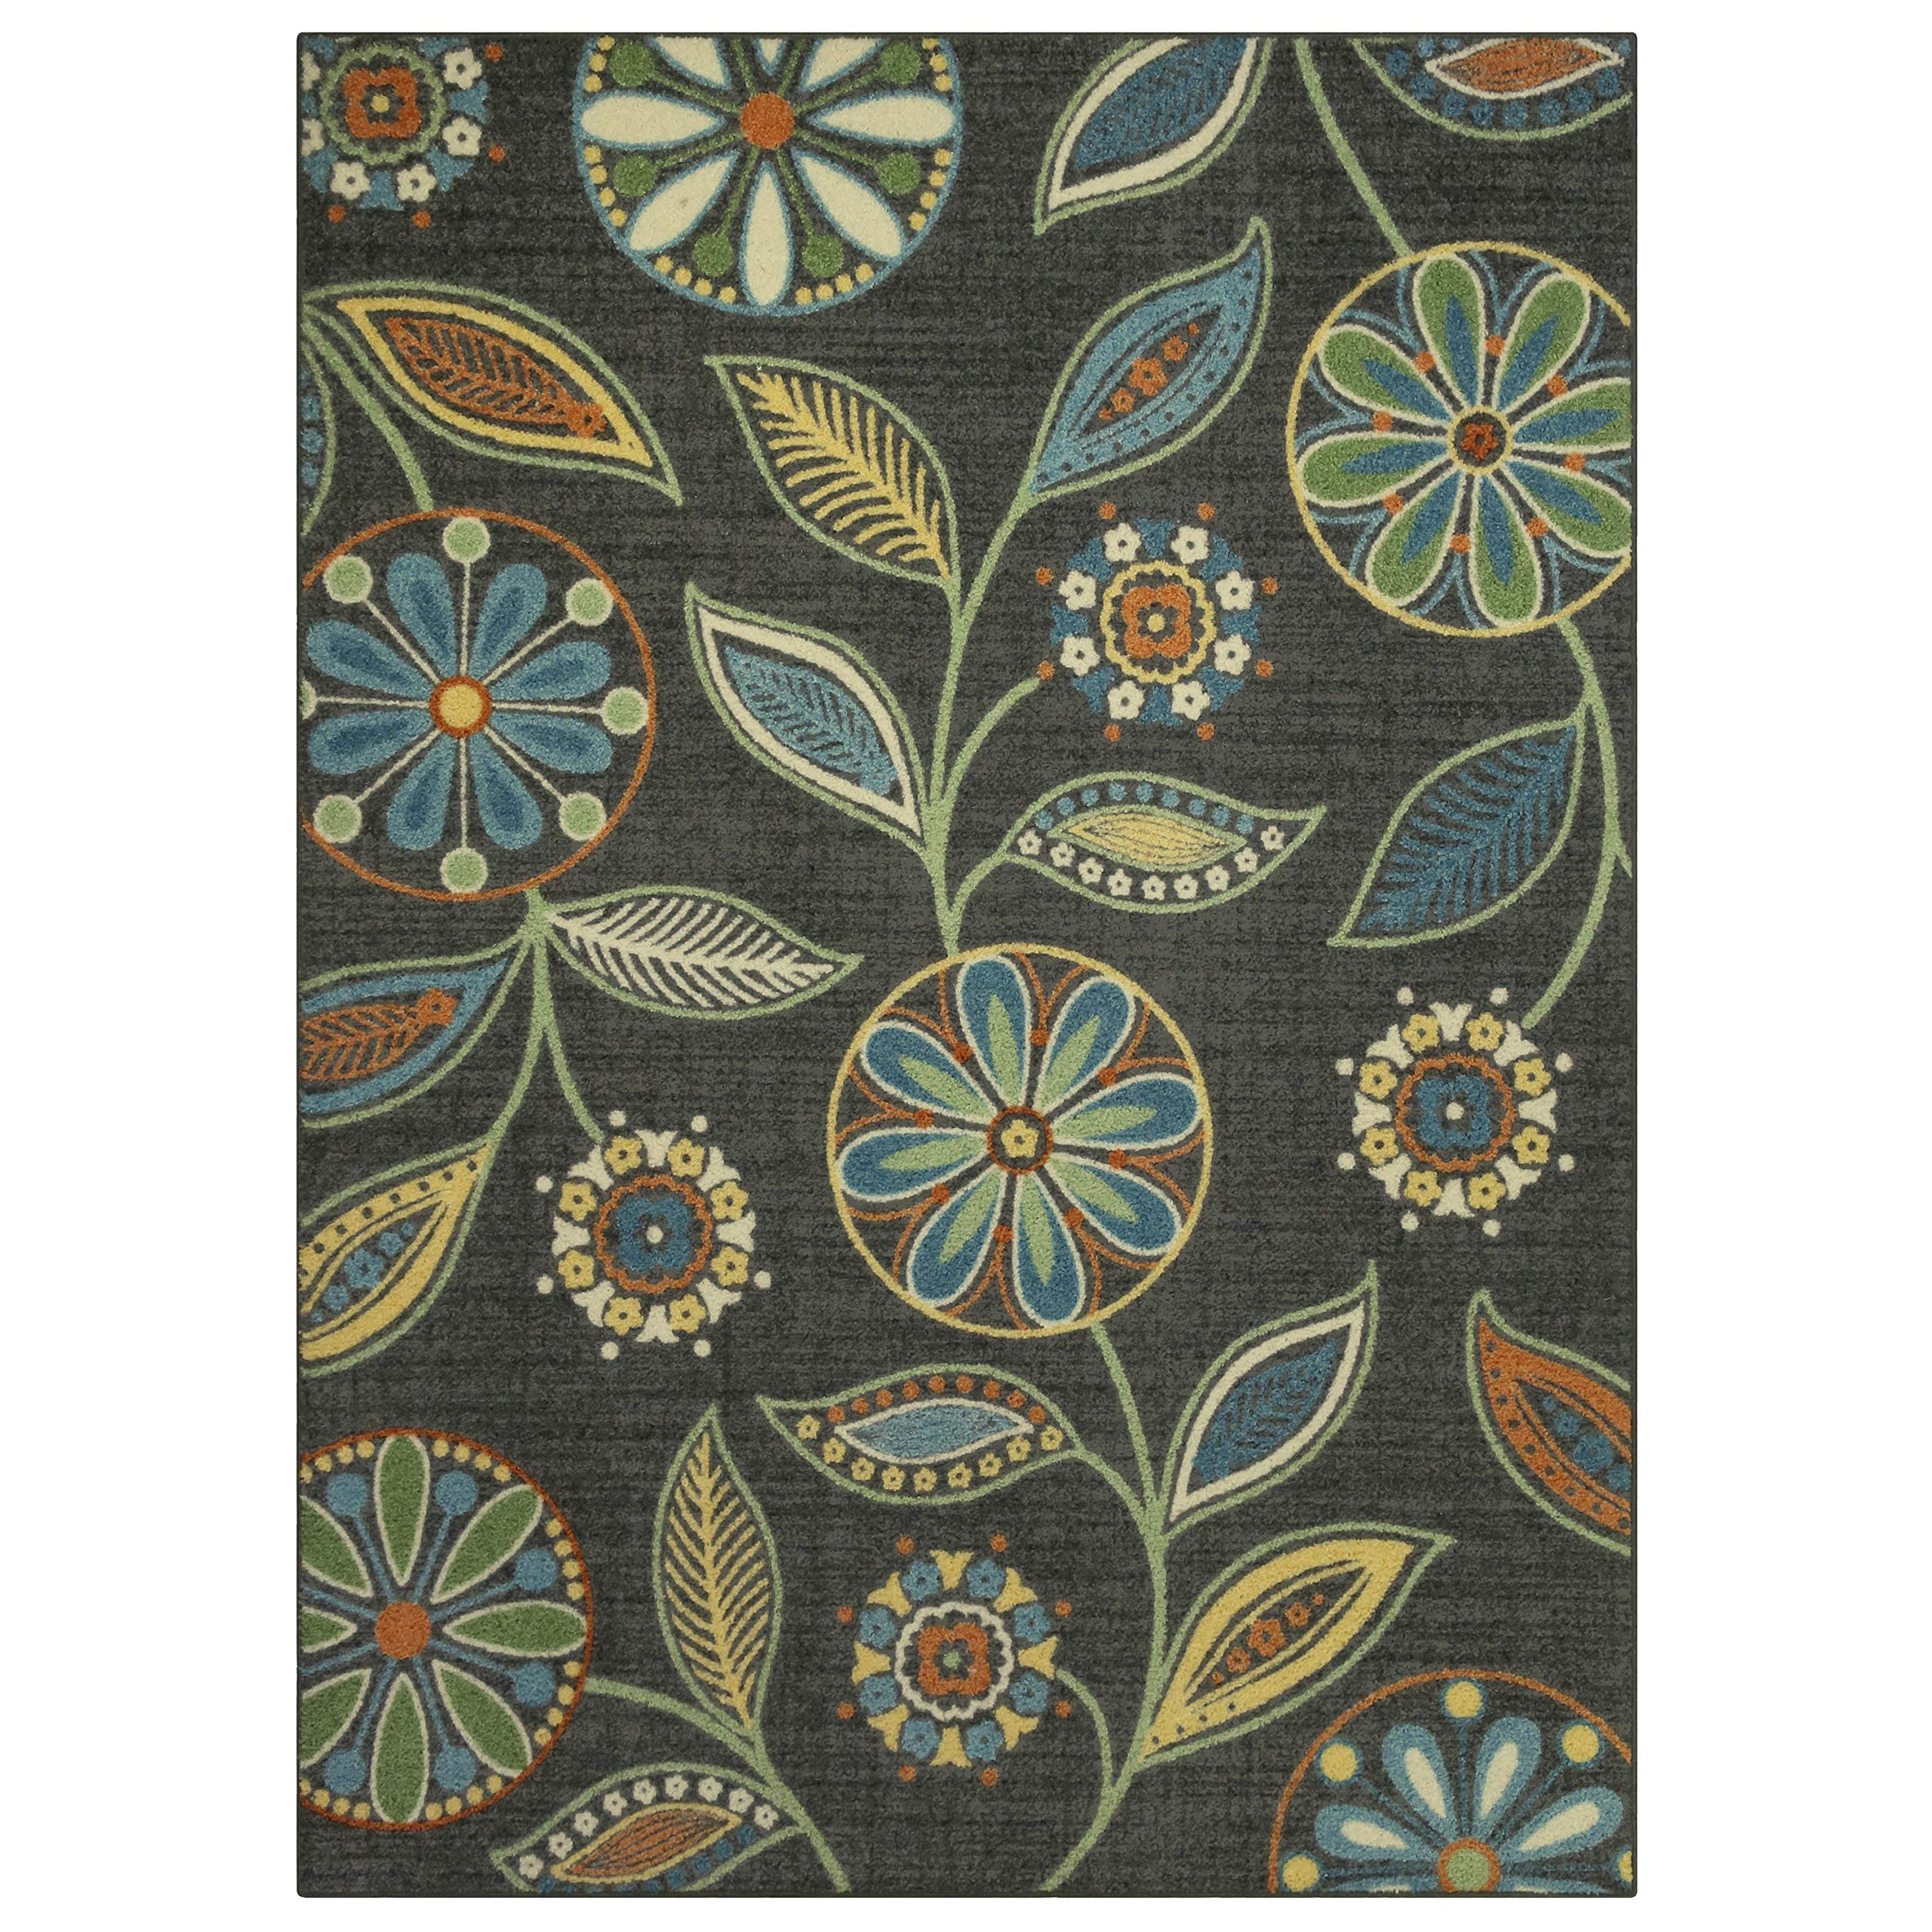 Maples Rugs Reggie Floral Area Rugs for Living Room & Bedroom [Made in USA], Multi, 5 x 7 product image